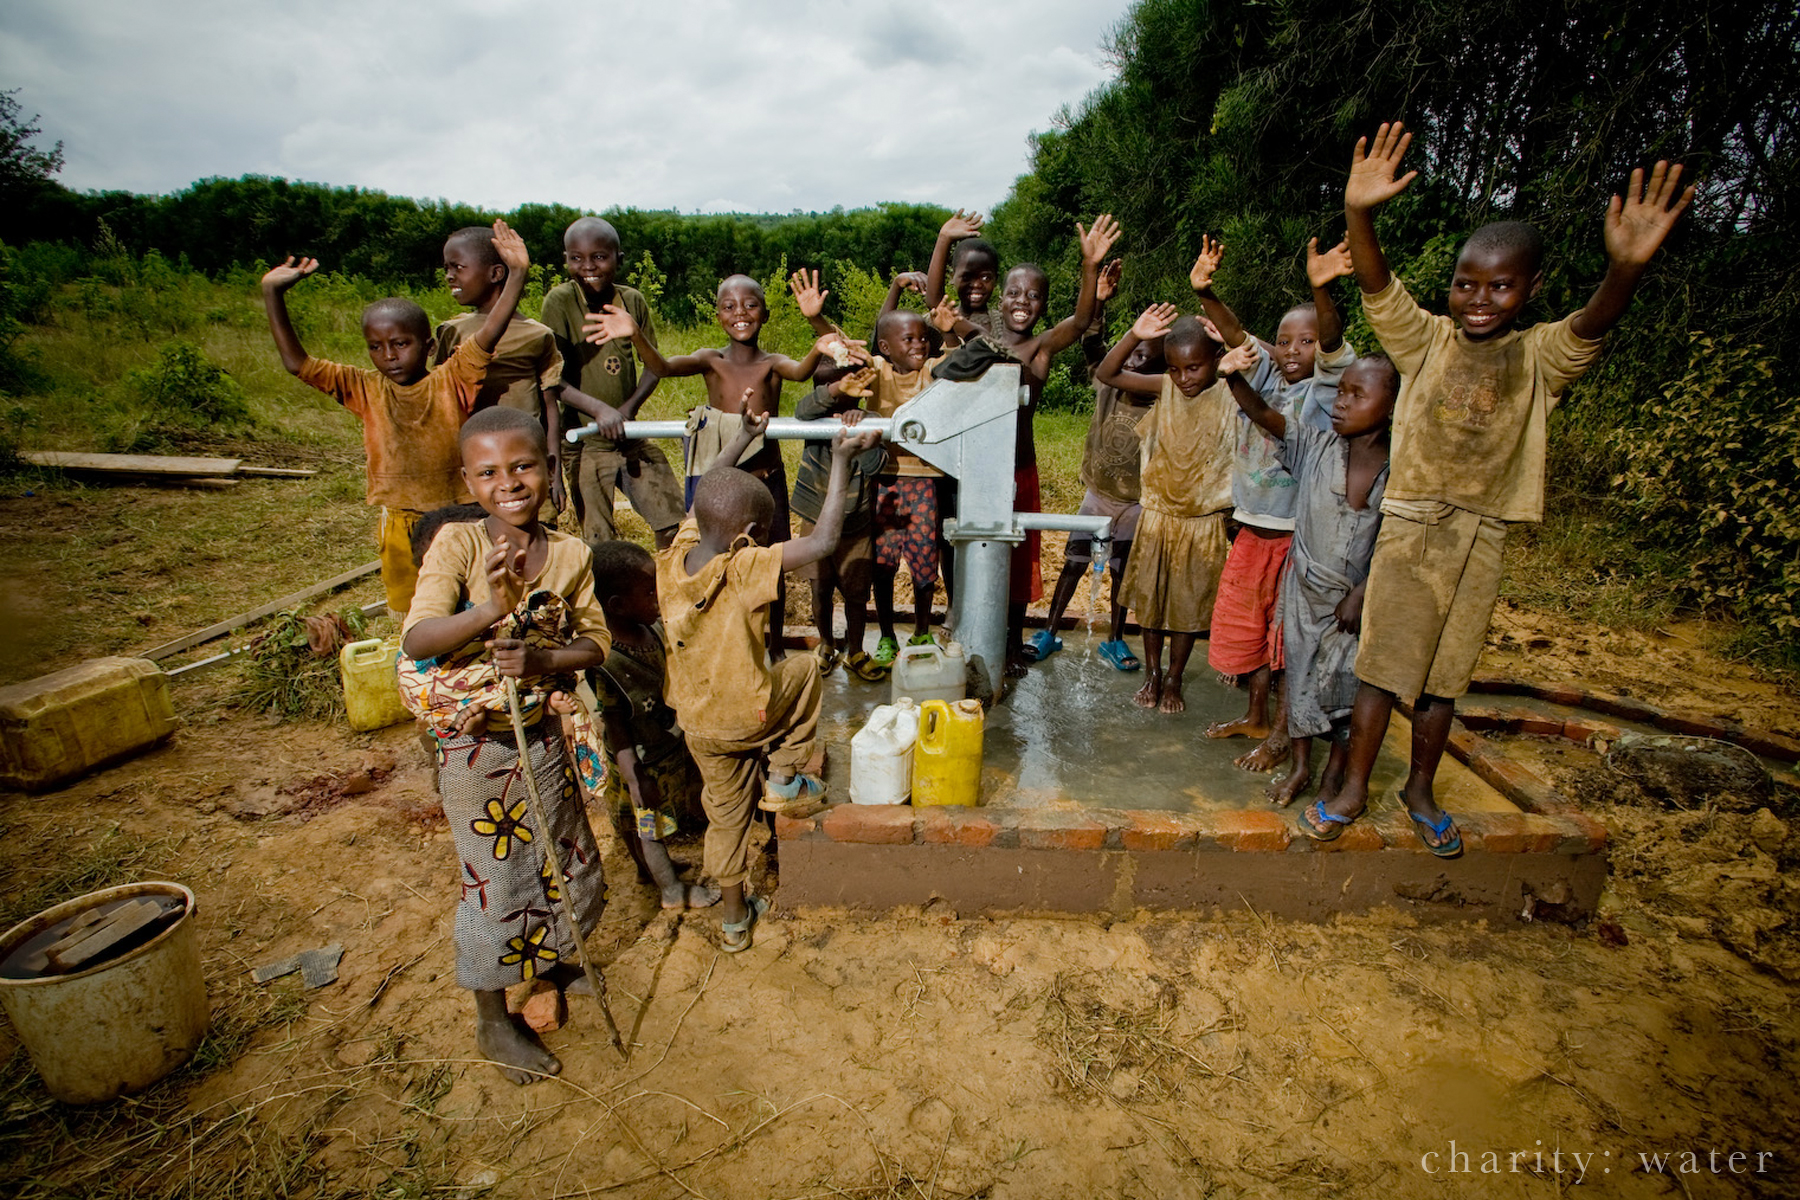 charity-water-photo